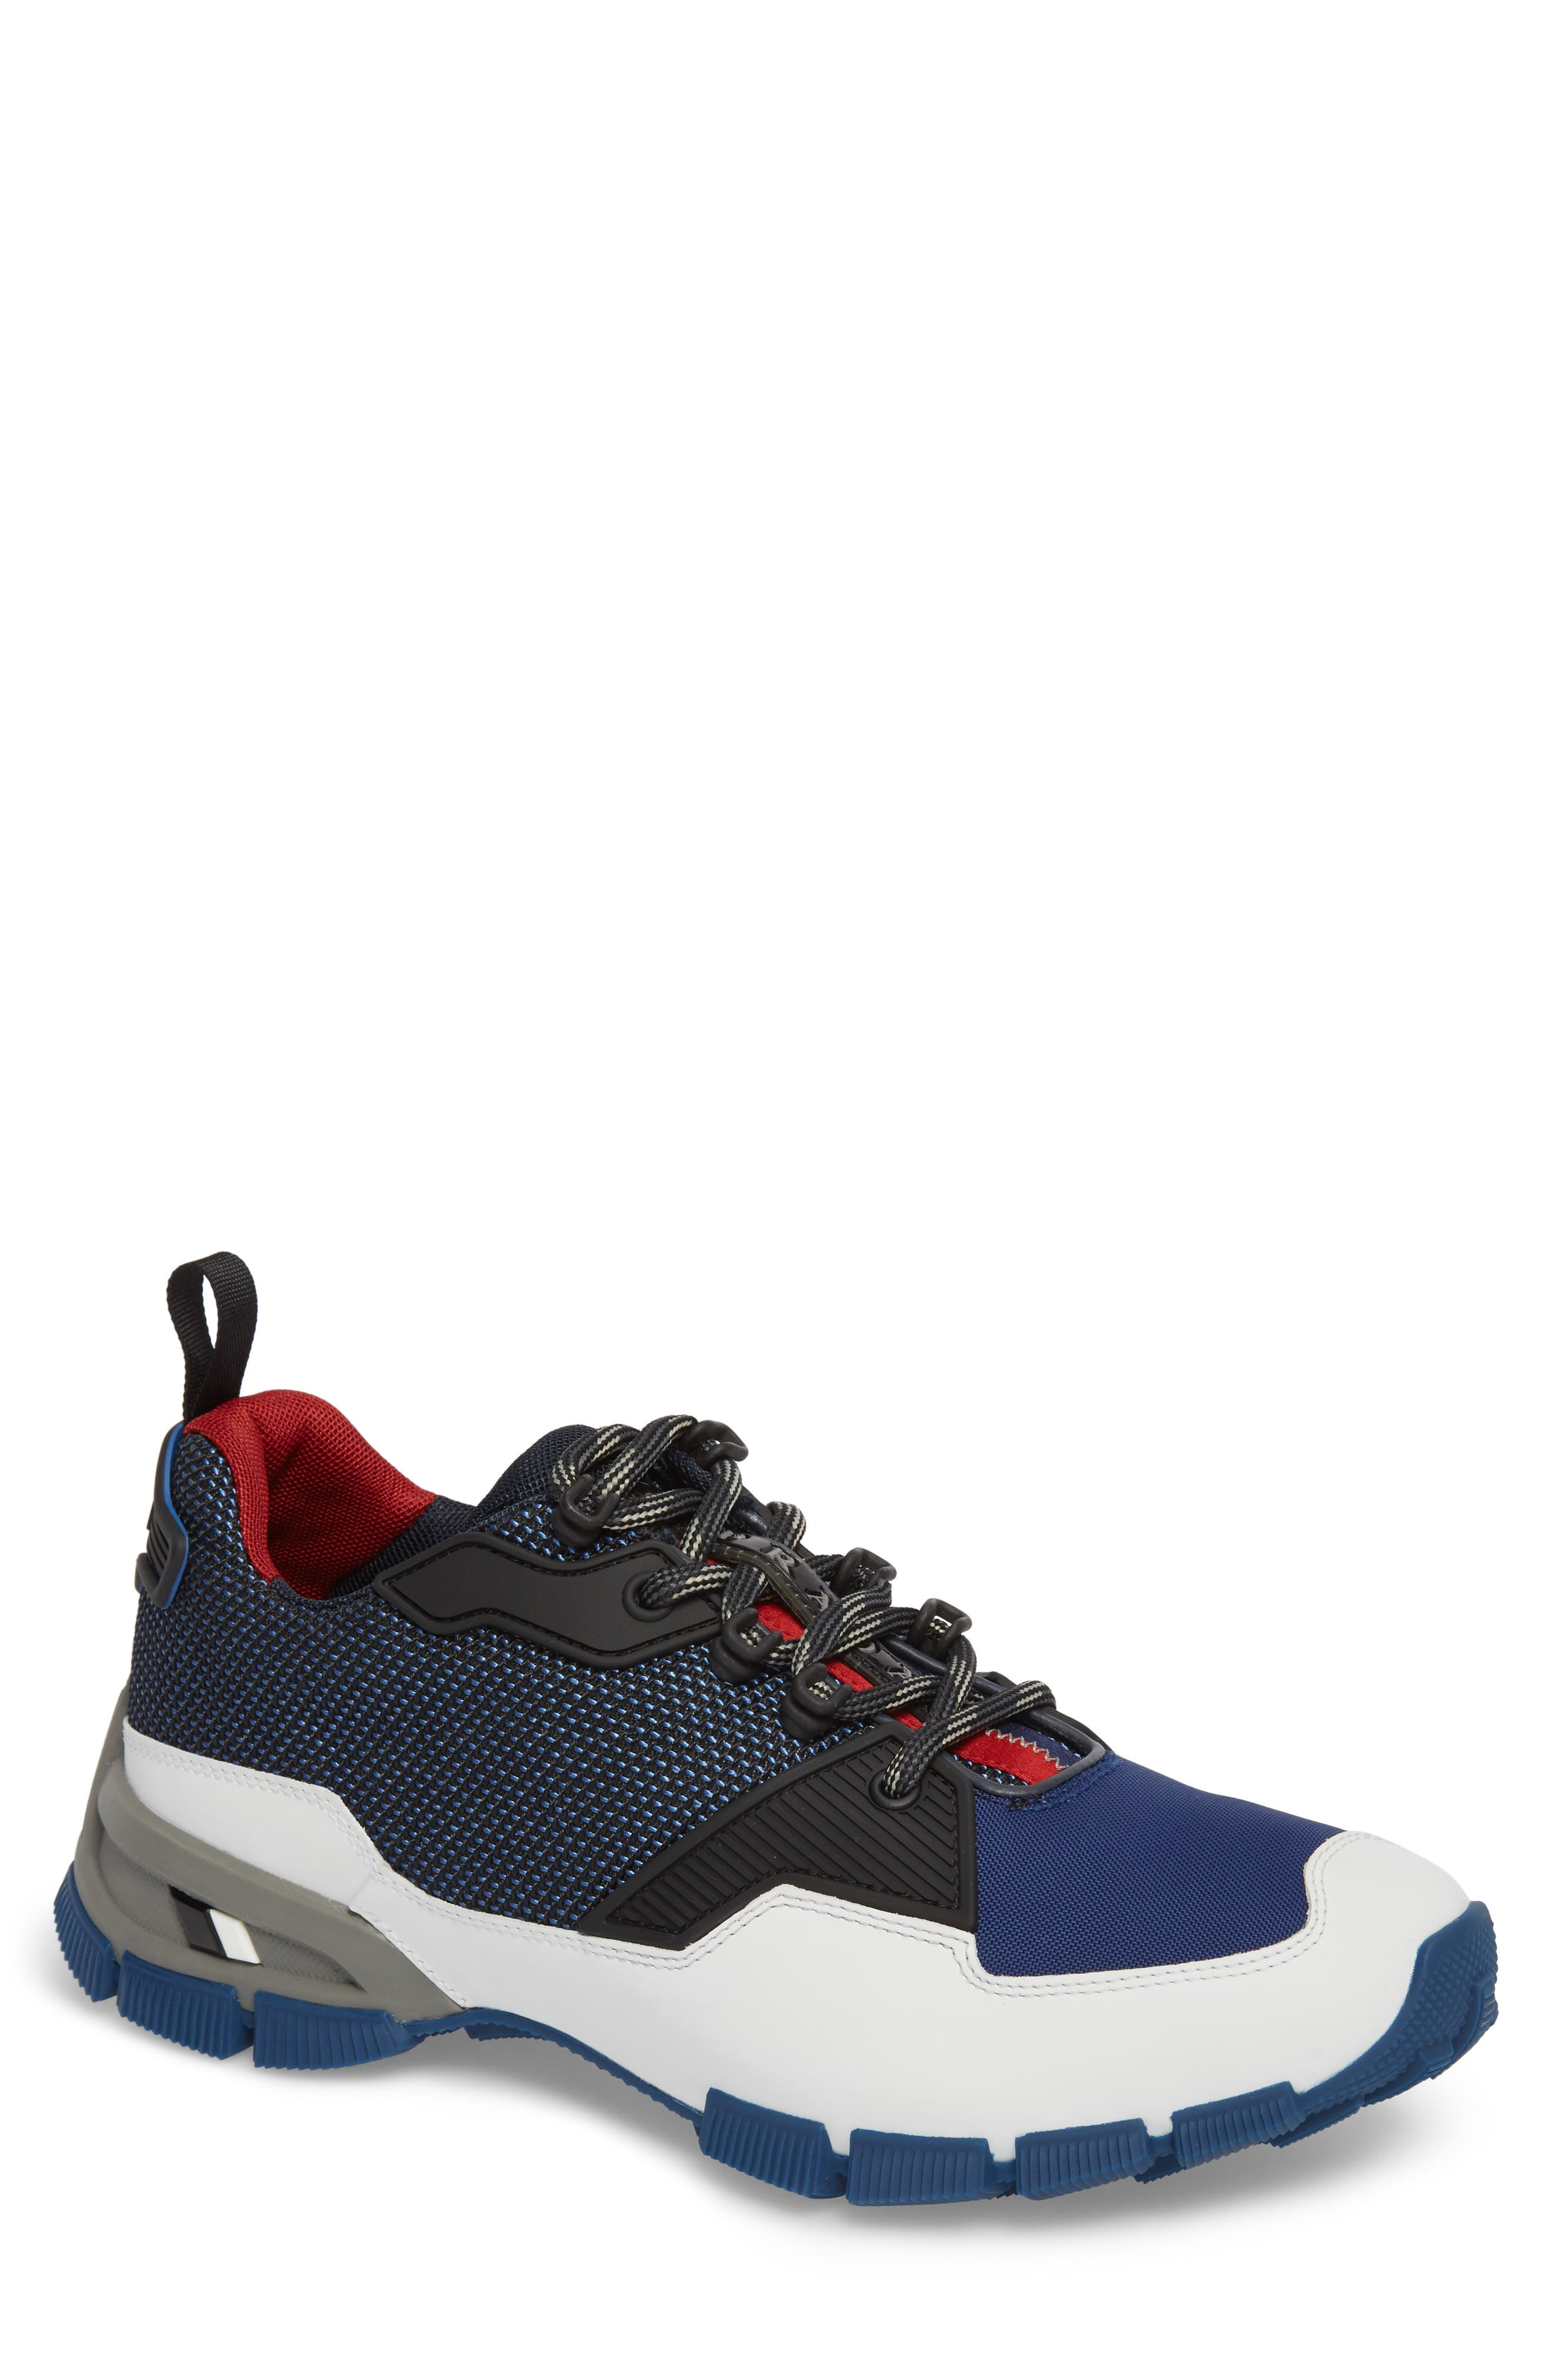 Linea Rossa Tech Lug Sneaker,                             Main thumbnail 1, color,                             400